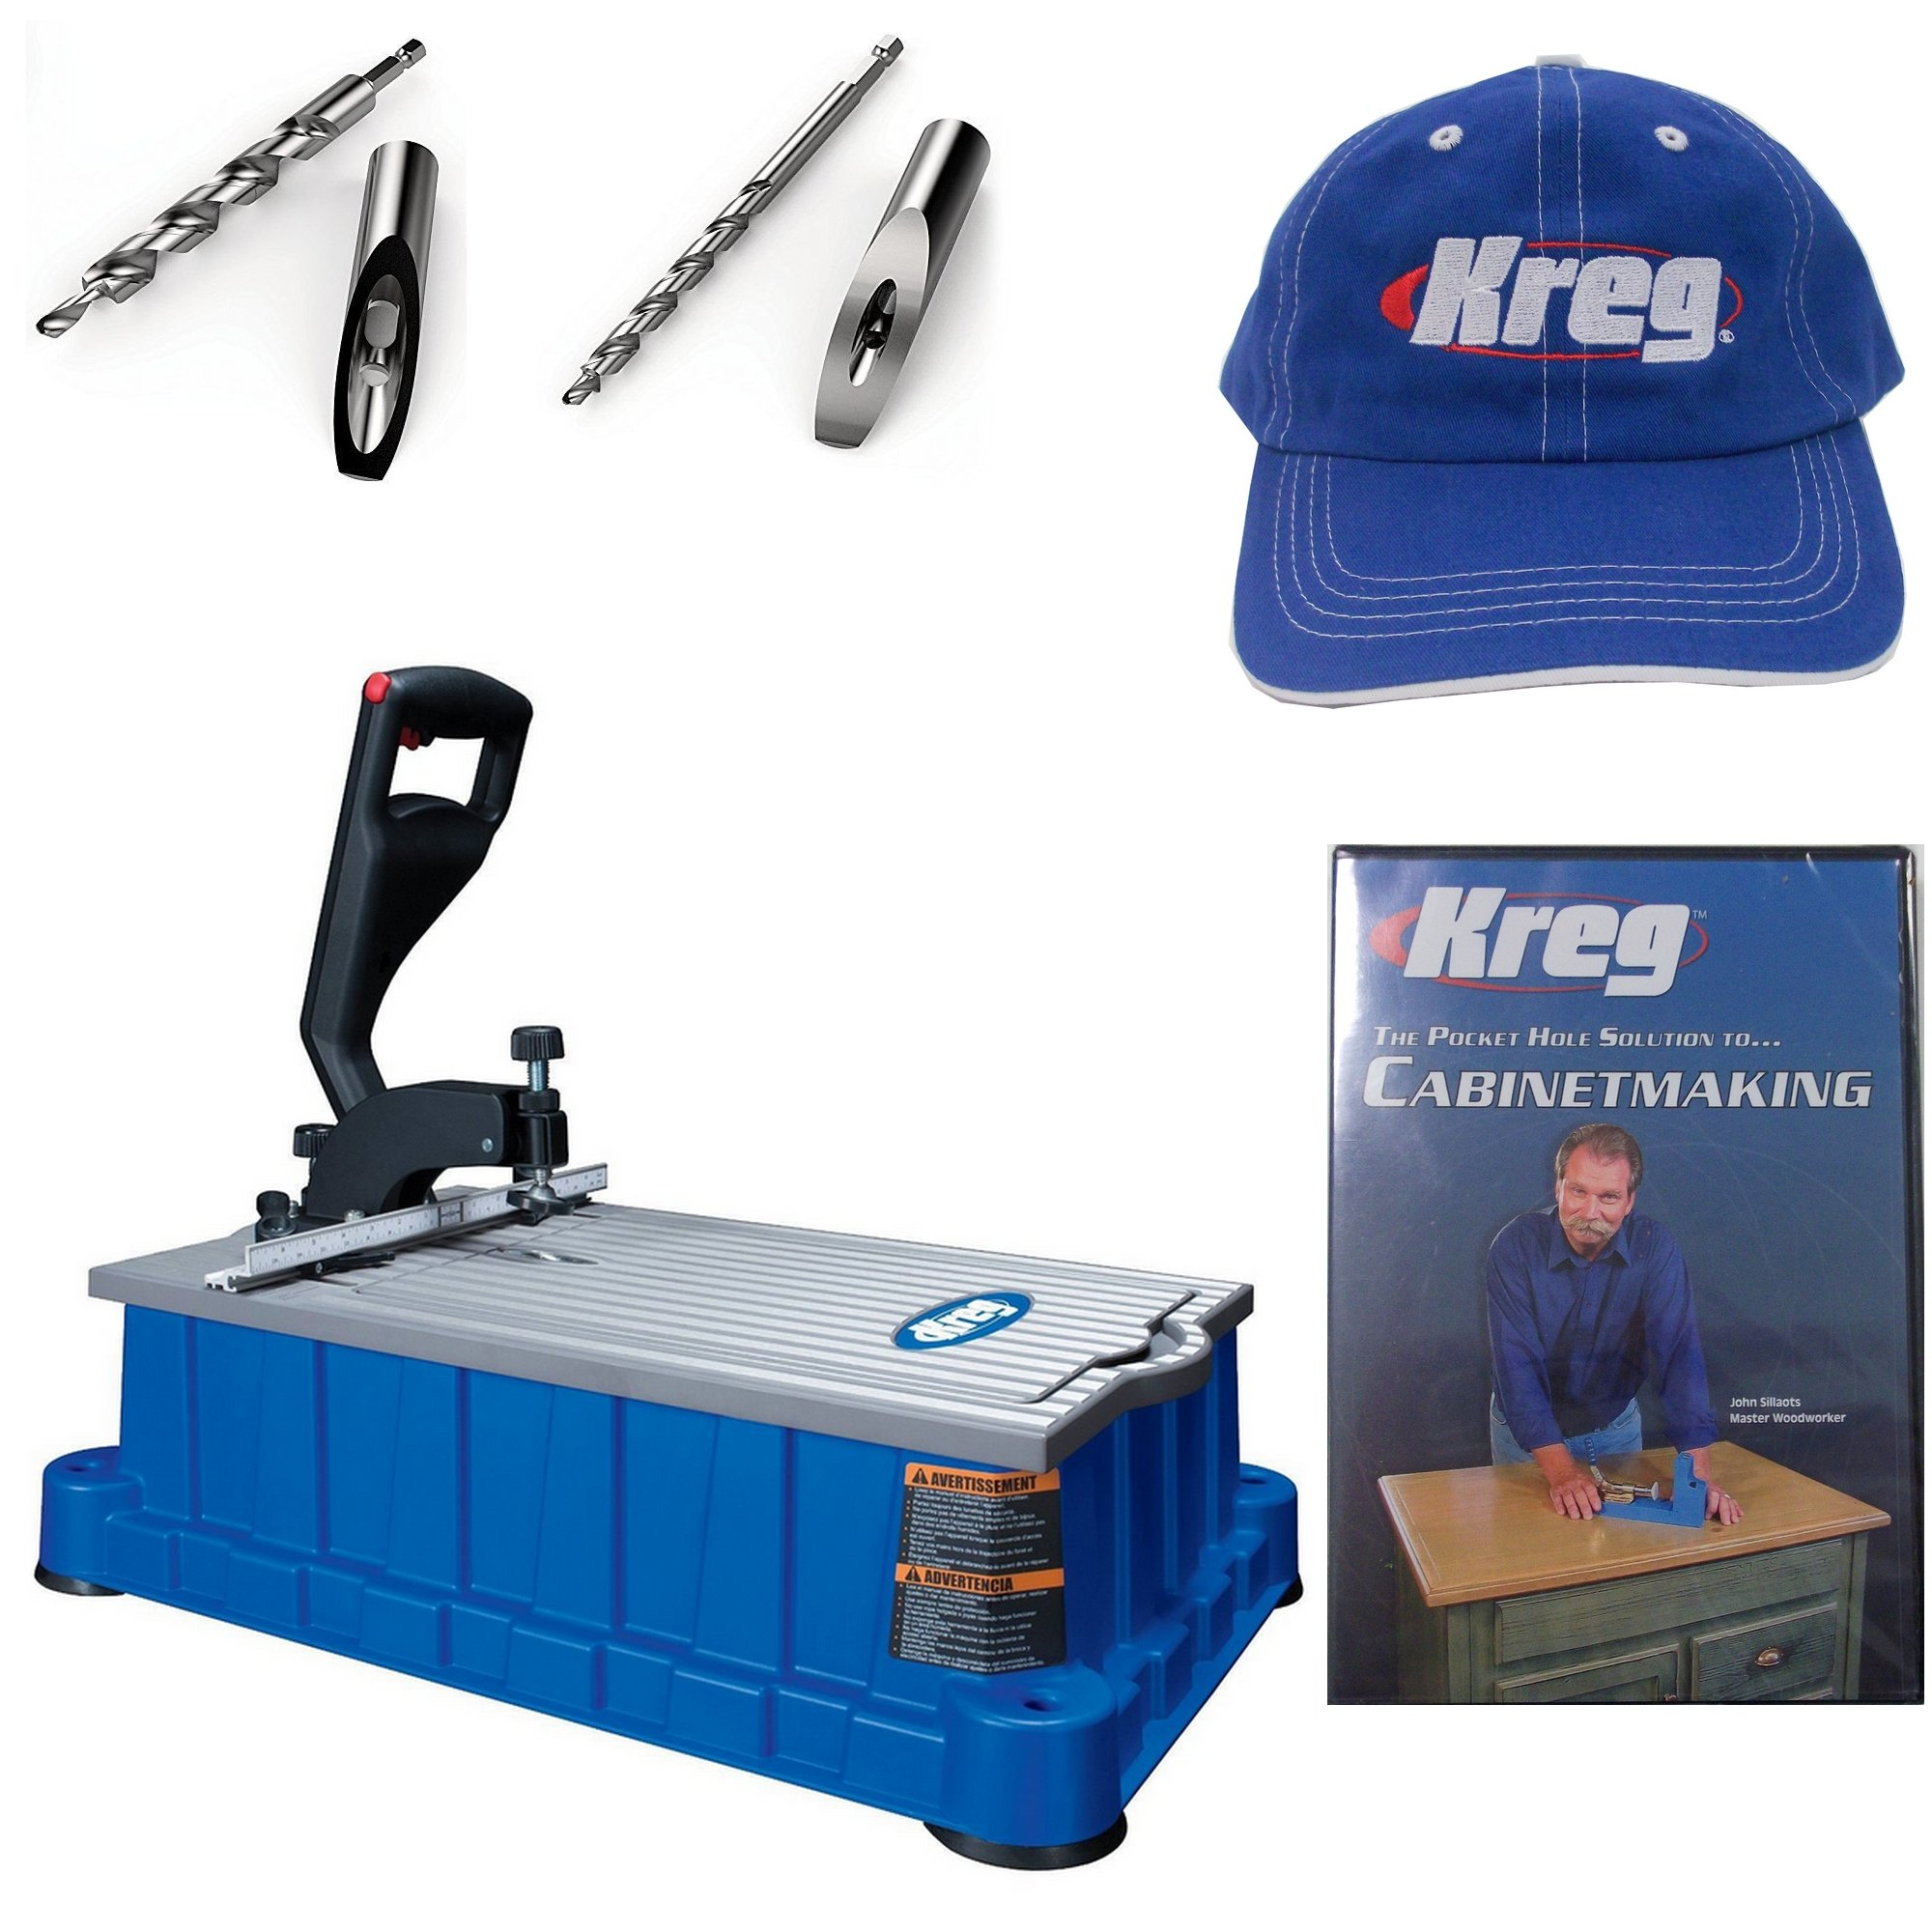 Kreg DB210 Foreman 110-Volt Pocket-Hole Machine, HD Drill Bit, Micro Drill Bit, Kreg Cap , and Cabinetmaking DVD